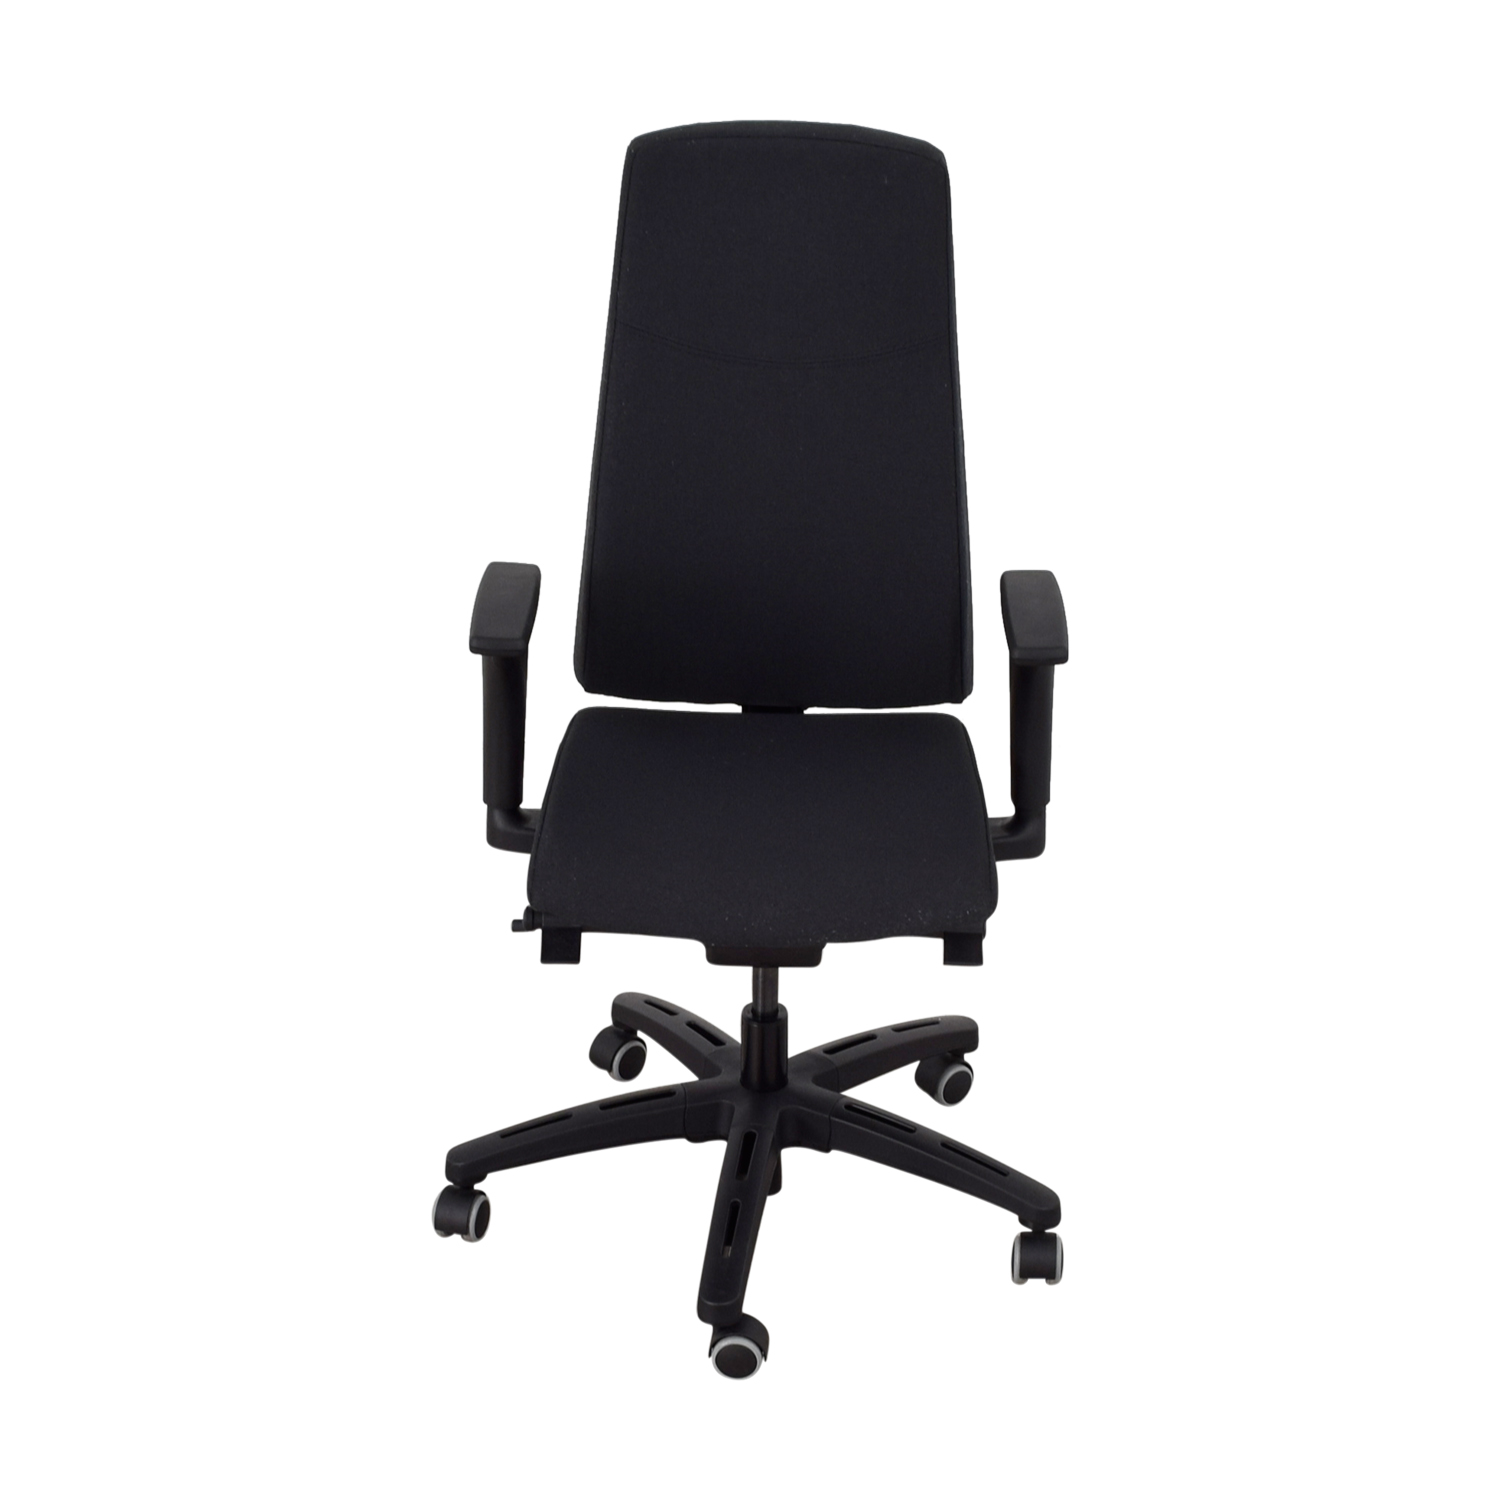 Office Chair With Arms 83 Off Ikea Ikea Volmar Grey Office Chair With Arms